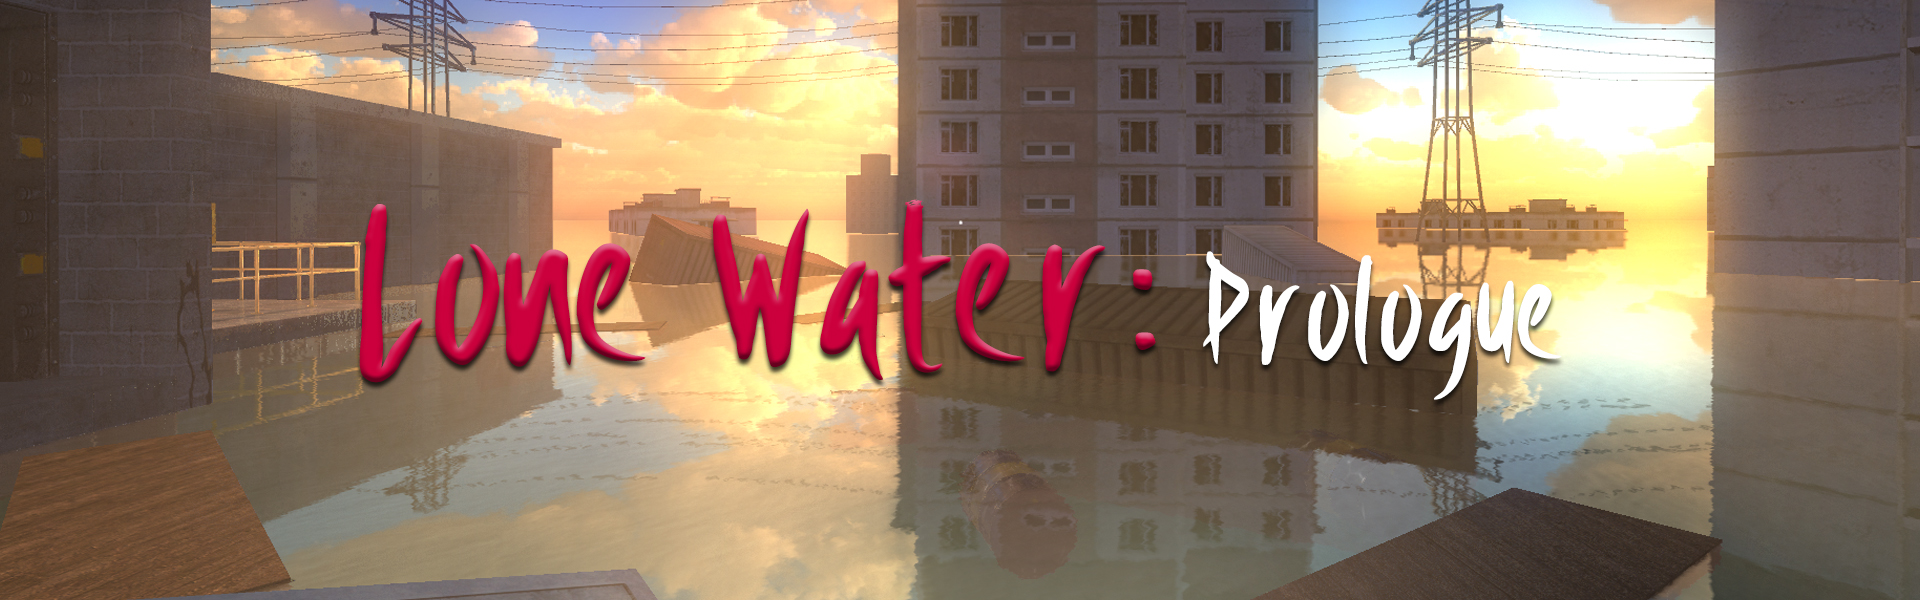 Lone Water: Prologue